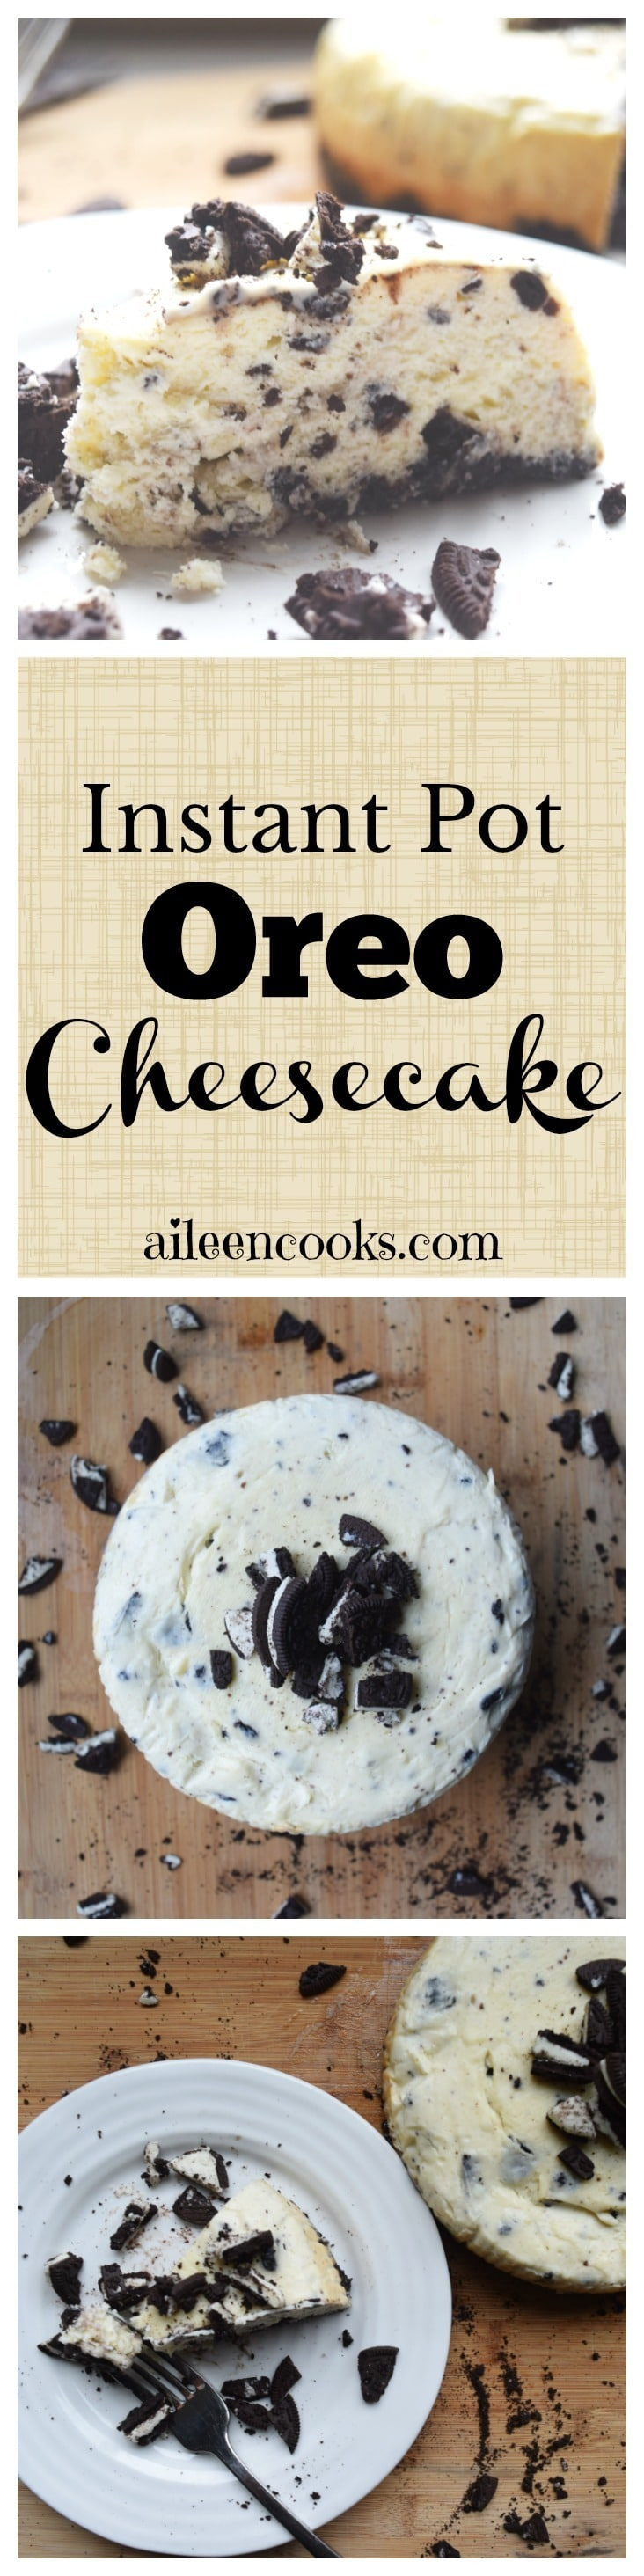 I made this oreo cheesecake in my instant pot and it was so good! If you have a pressure cooker, then you need to try this recipe for instant pot Oreo cheesecake. This is the perfect sweet dessert recipe to make in your instant pot!